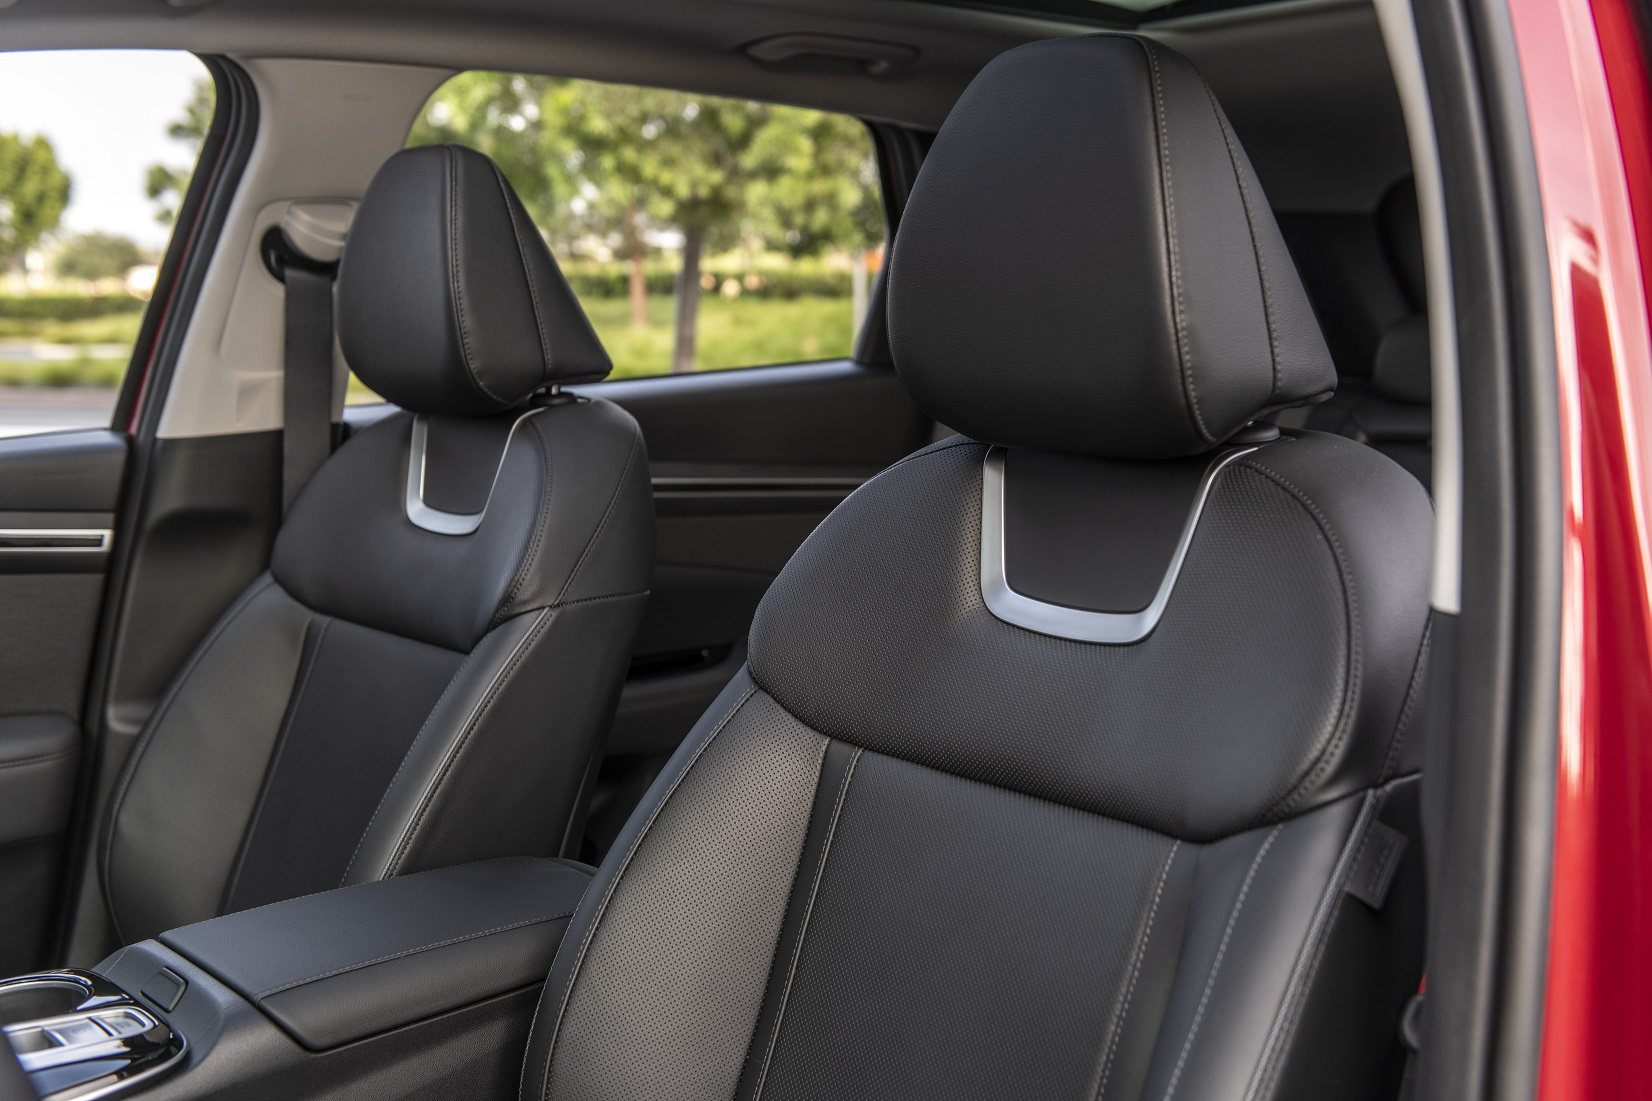 The hybrid model has heated and ventilated front seats